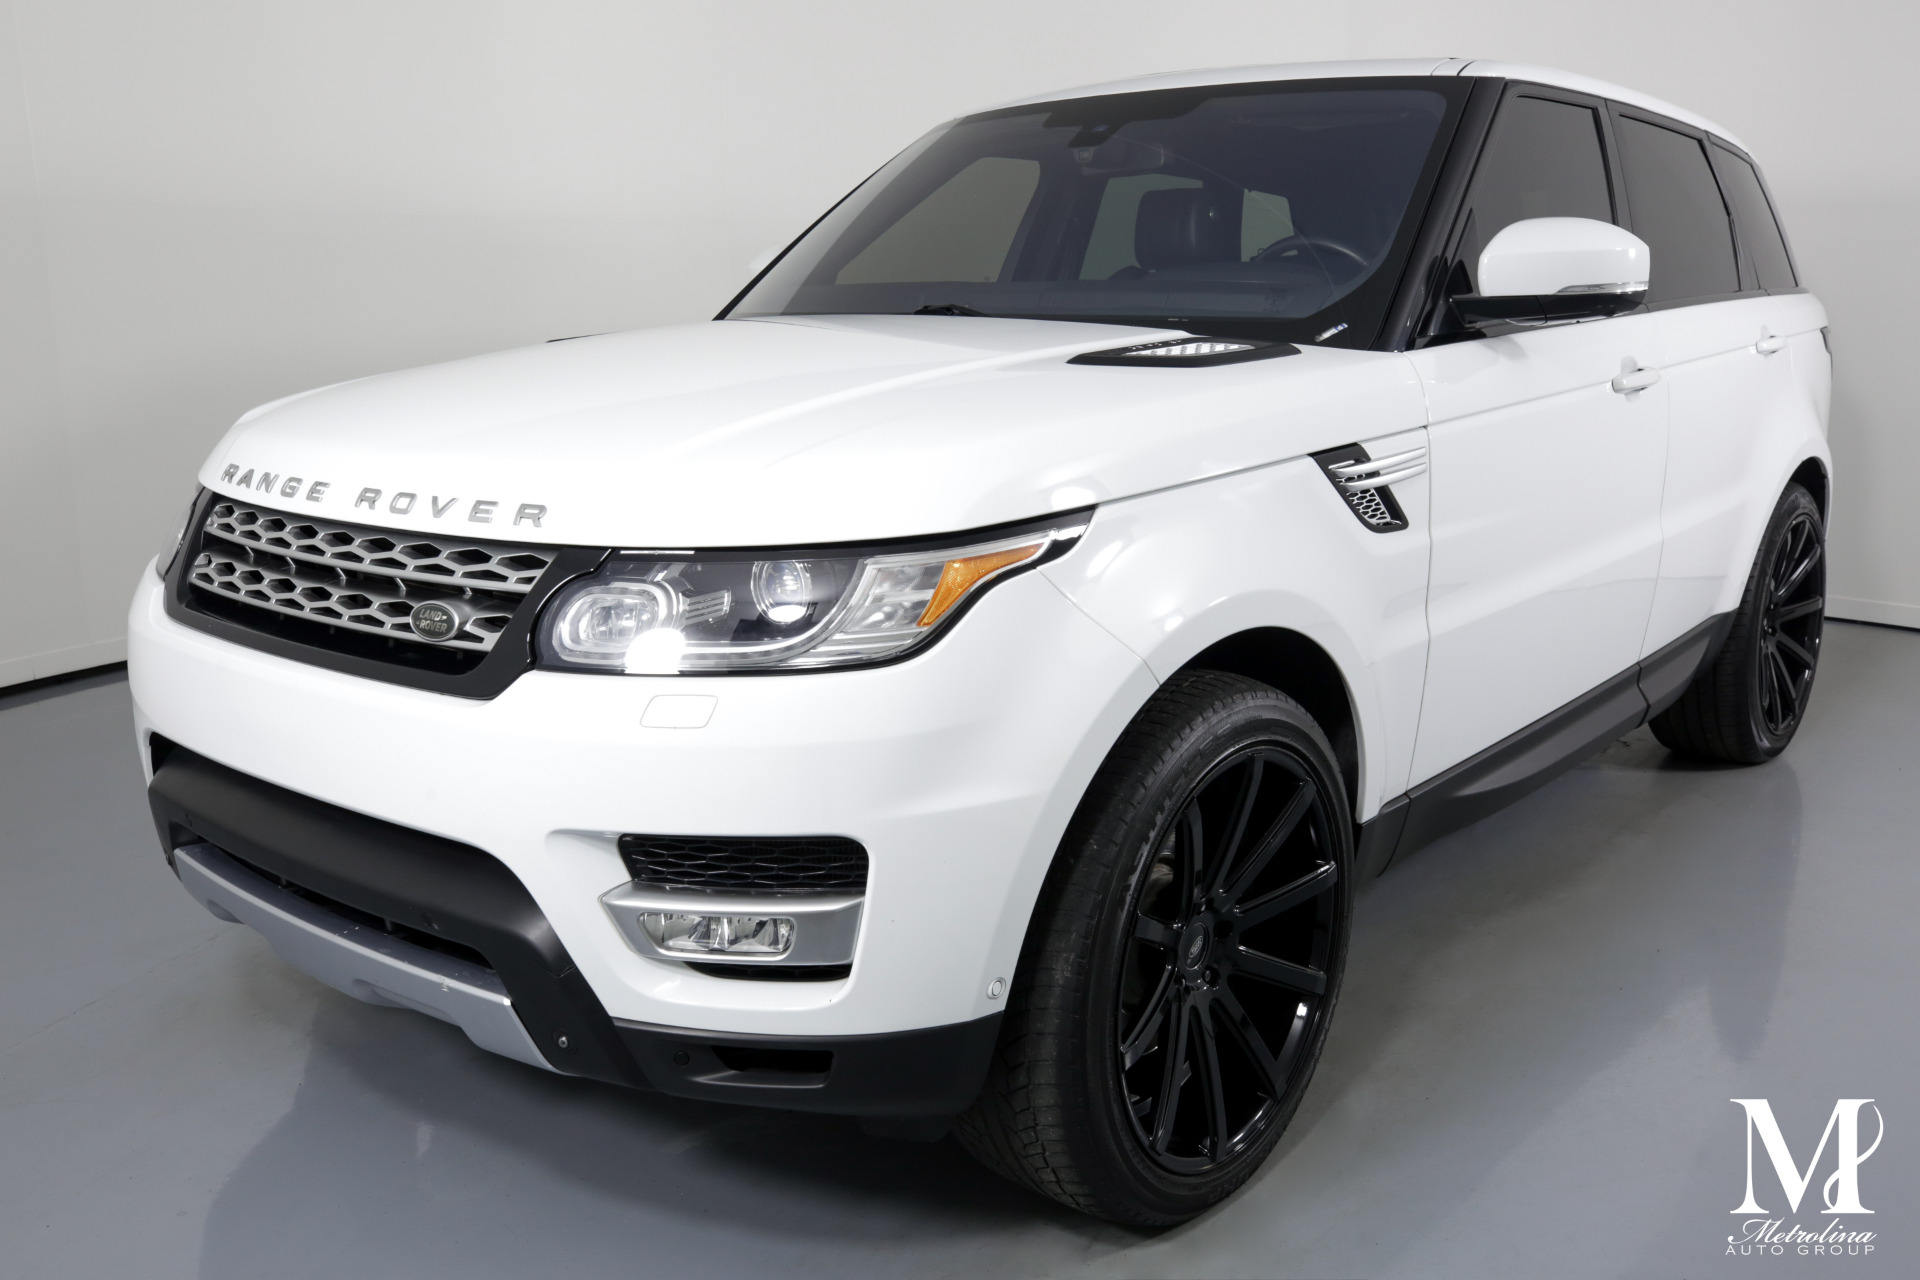 Used 2014 Land Rover Range Rover Sport HSE for sale $36,475 at Metrolina Auto Group in Charlotte NC 28217 - 4